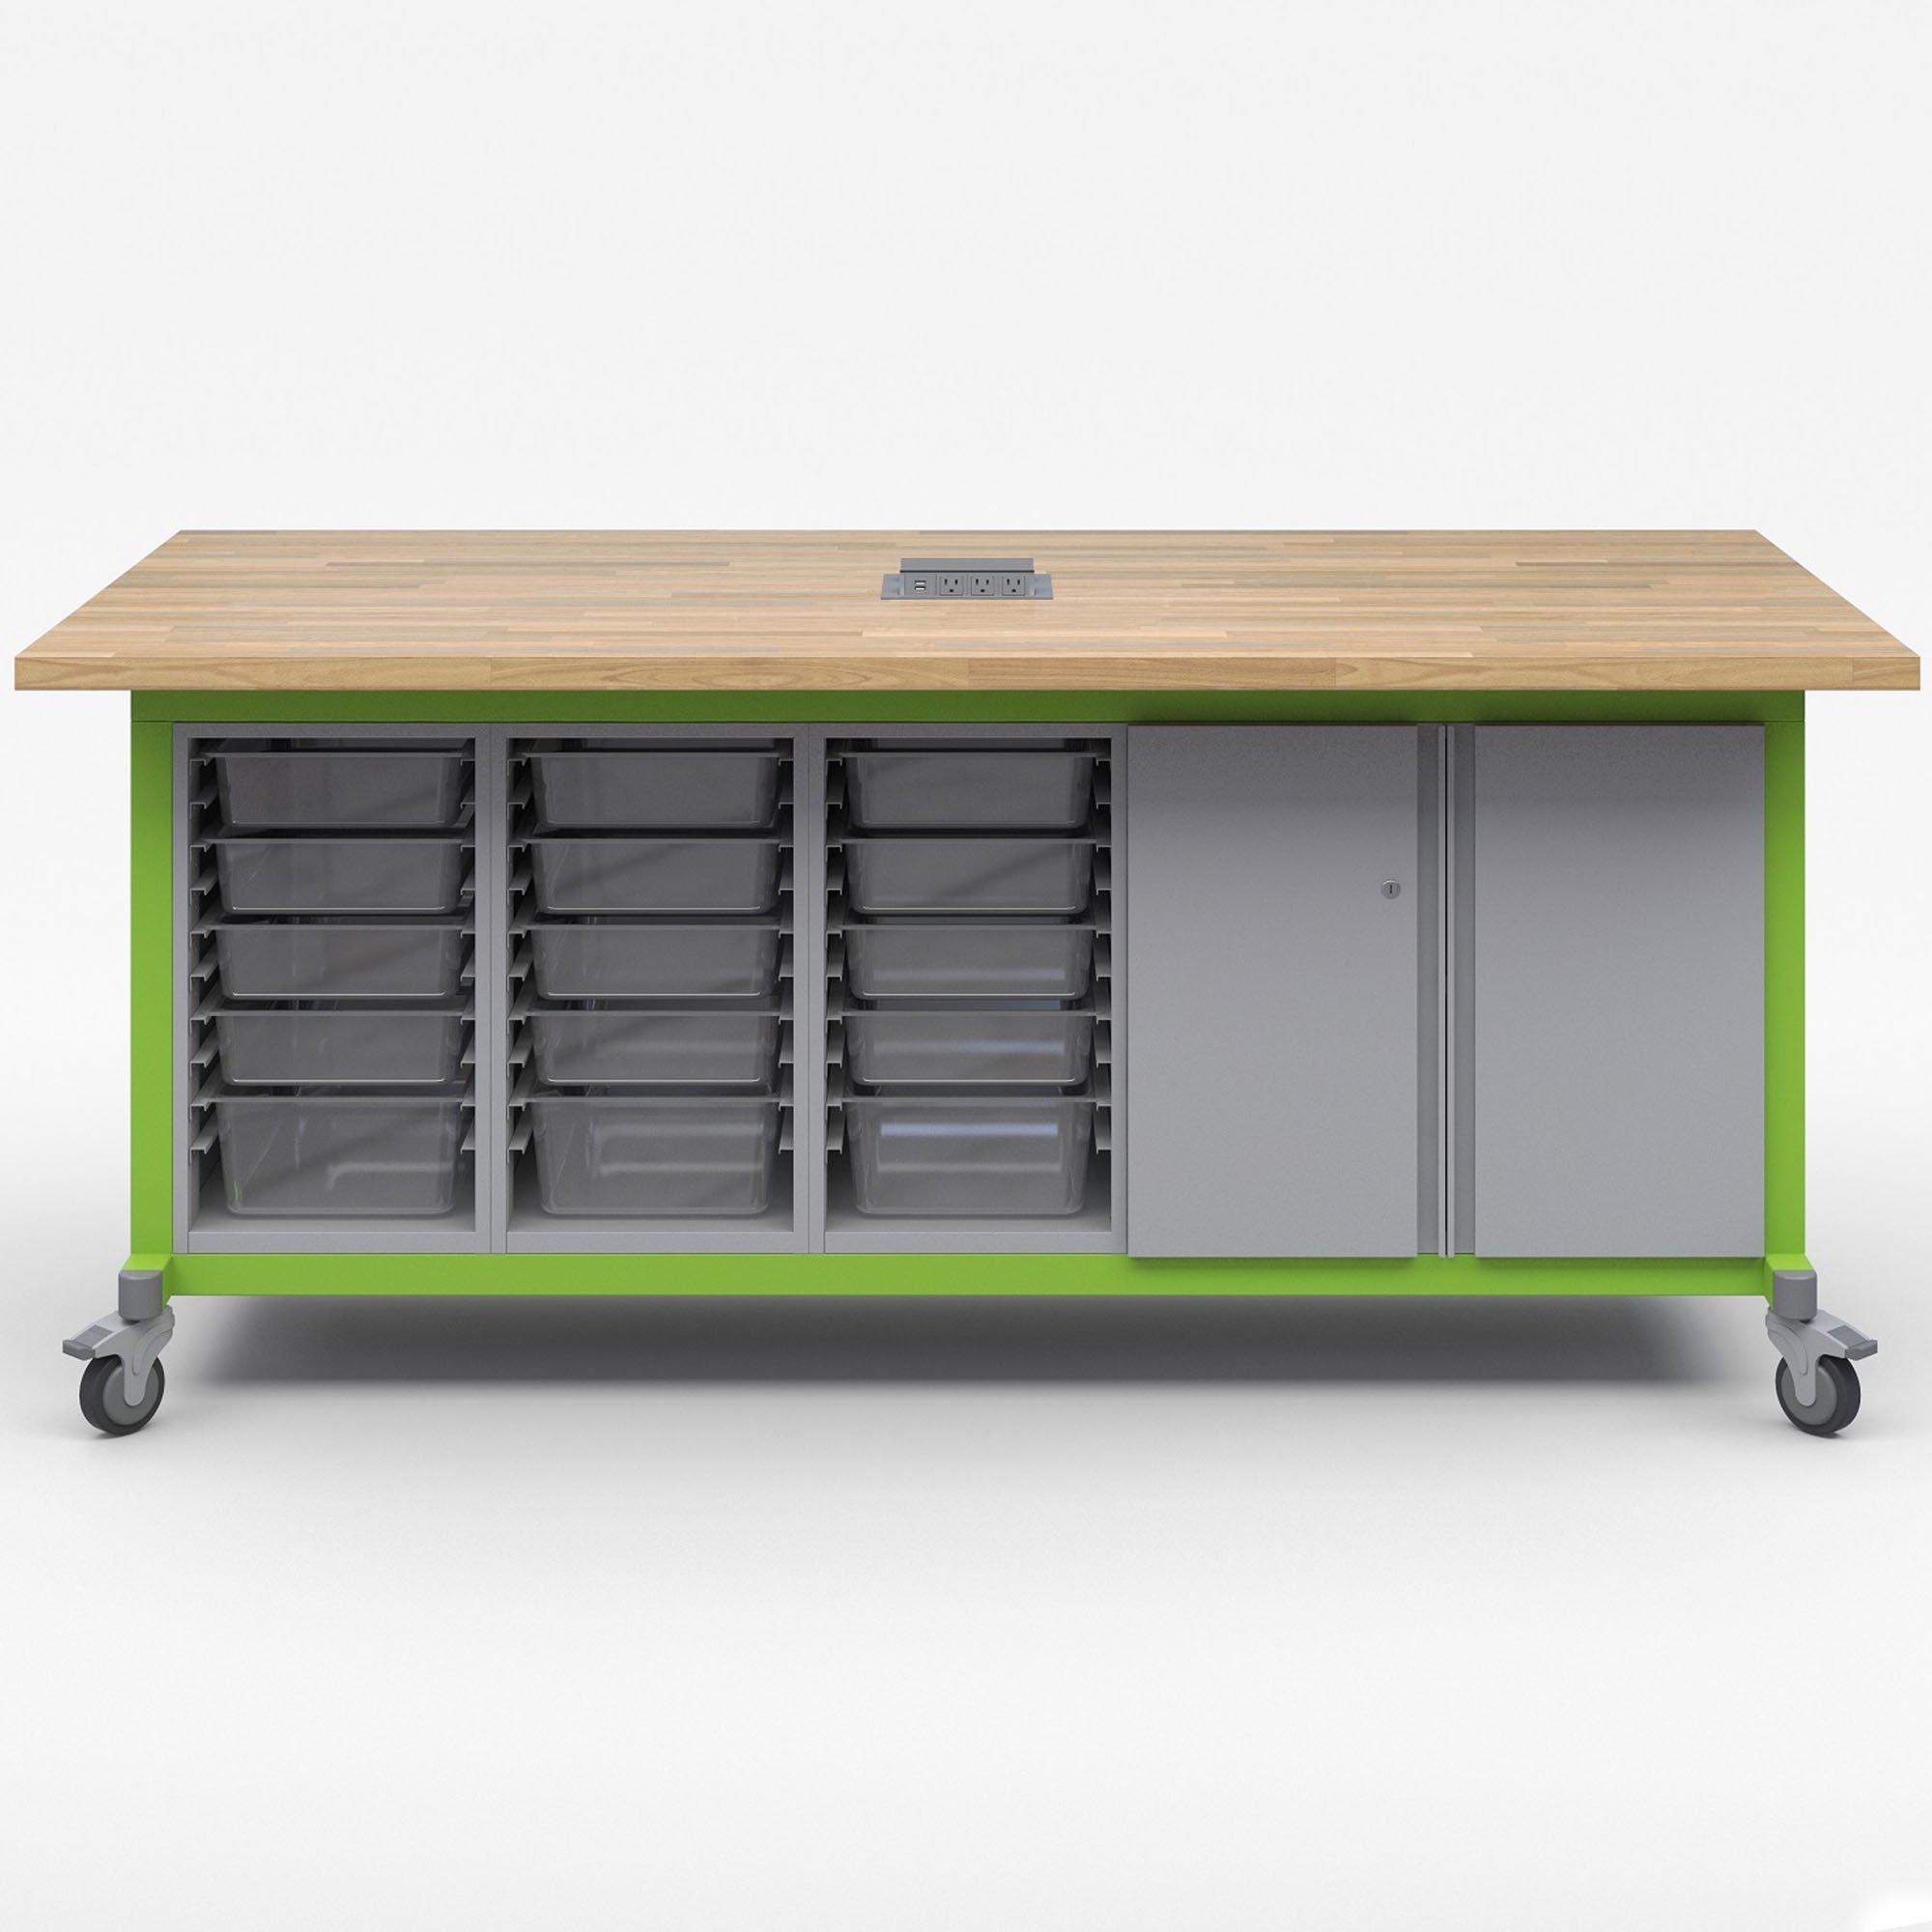 Explorer Series Maker Tables with Power-Tables-3 Bin Modules, 1 Double Door Storage Module-Green Apple-